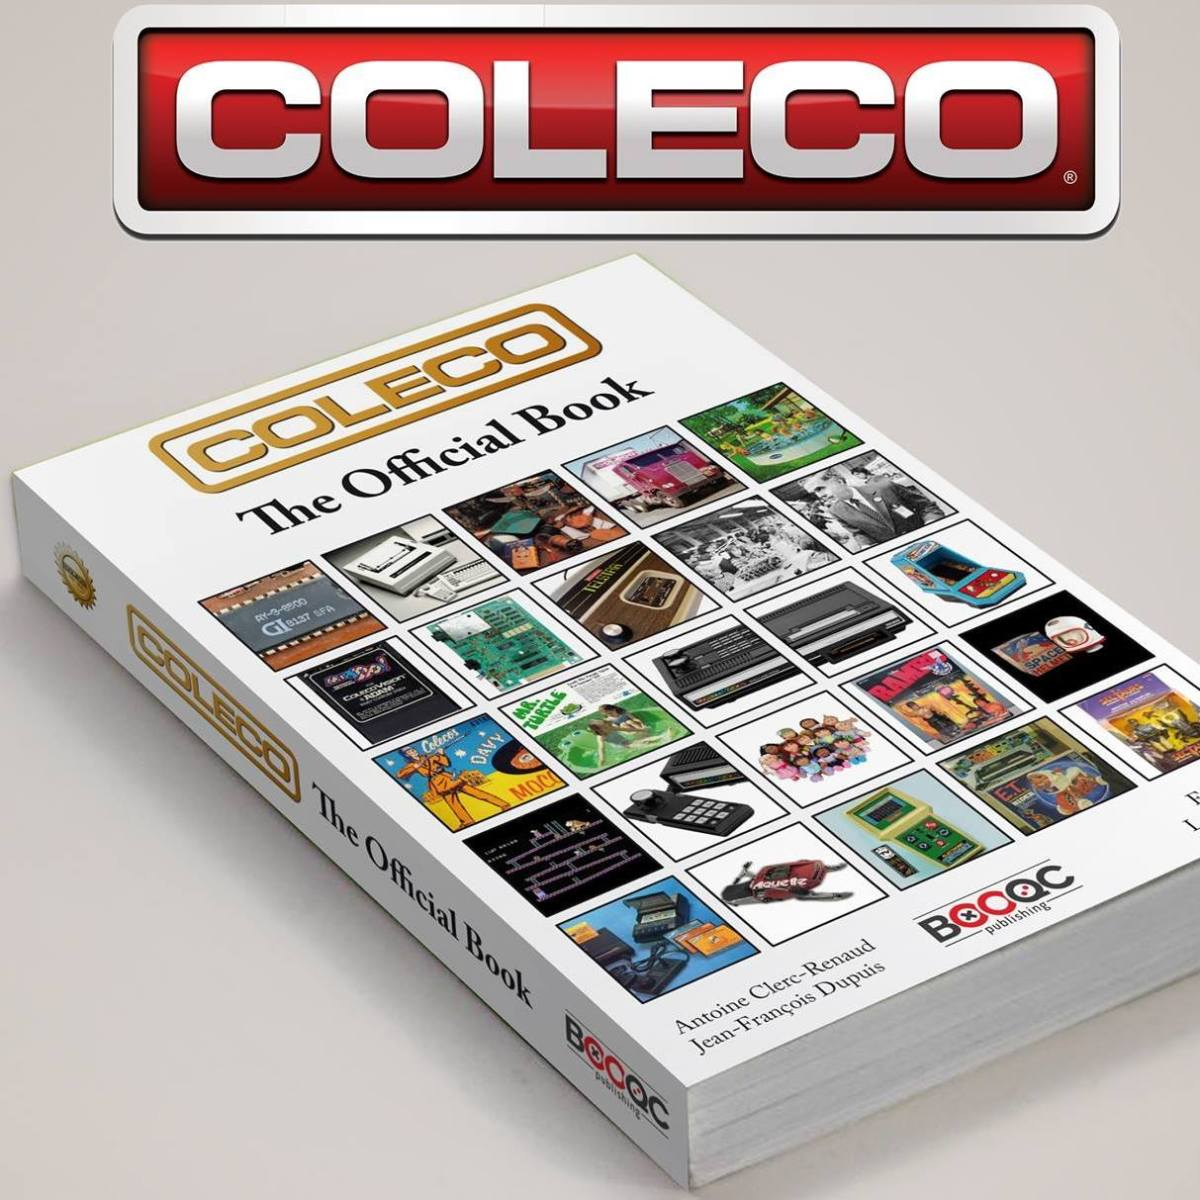 Coleco: The Official Book Review